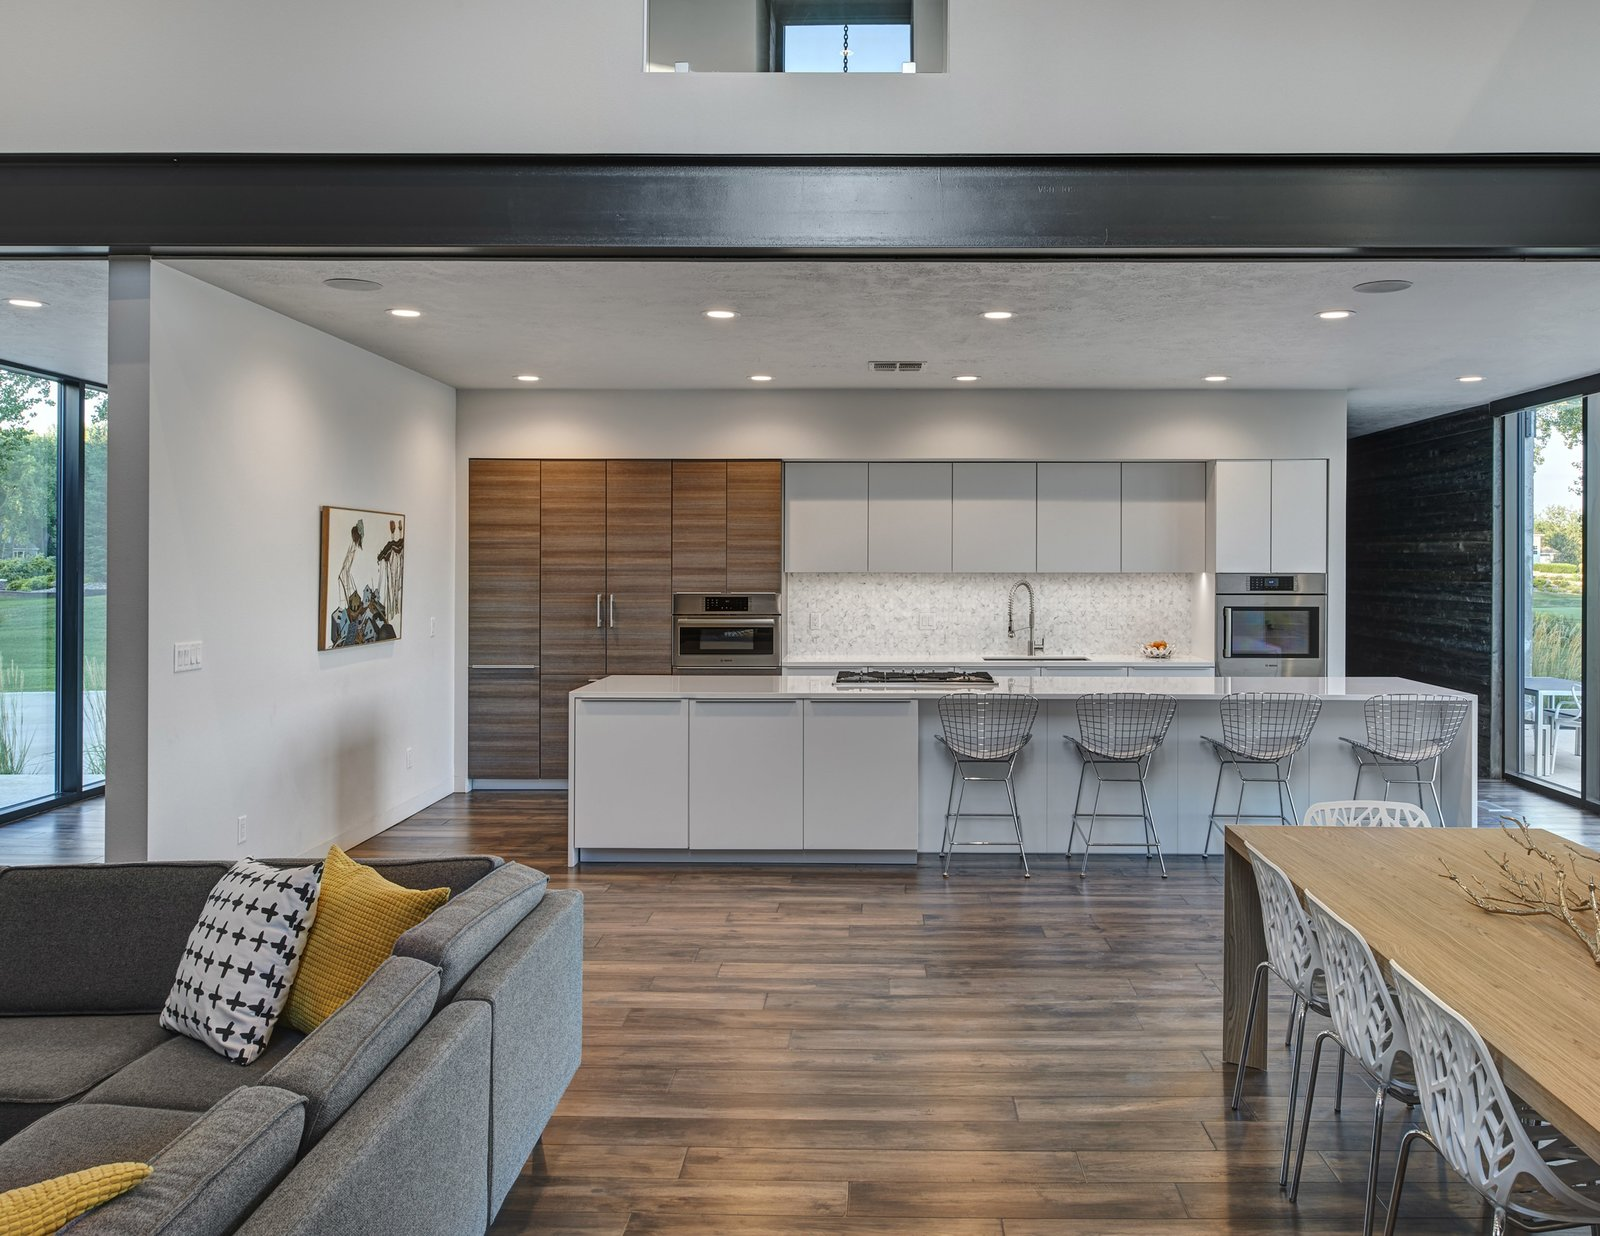 Kitchen, Quartzite Counter, White Cabinet, Wood Cabinet, Recessed Lighting, Refrigerator, Wall Oven, Dark Hardwood Floor, Ceramic Tile Backsplashe, Cooktops, Wine Cooler, Dishwasher, Microwave, and Undermount Sink View of the kitchen. (2017)  530 house